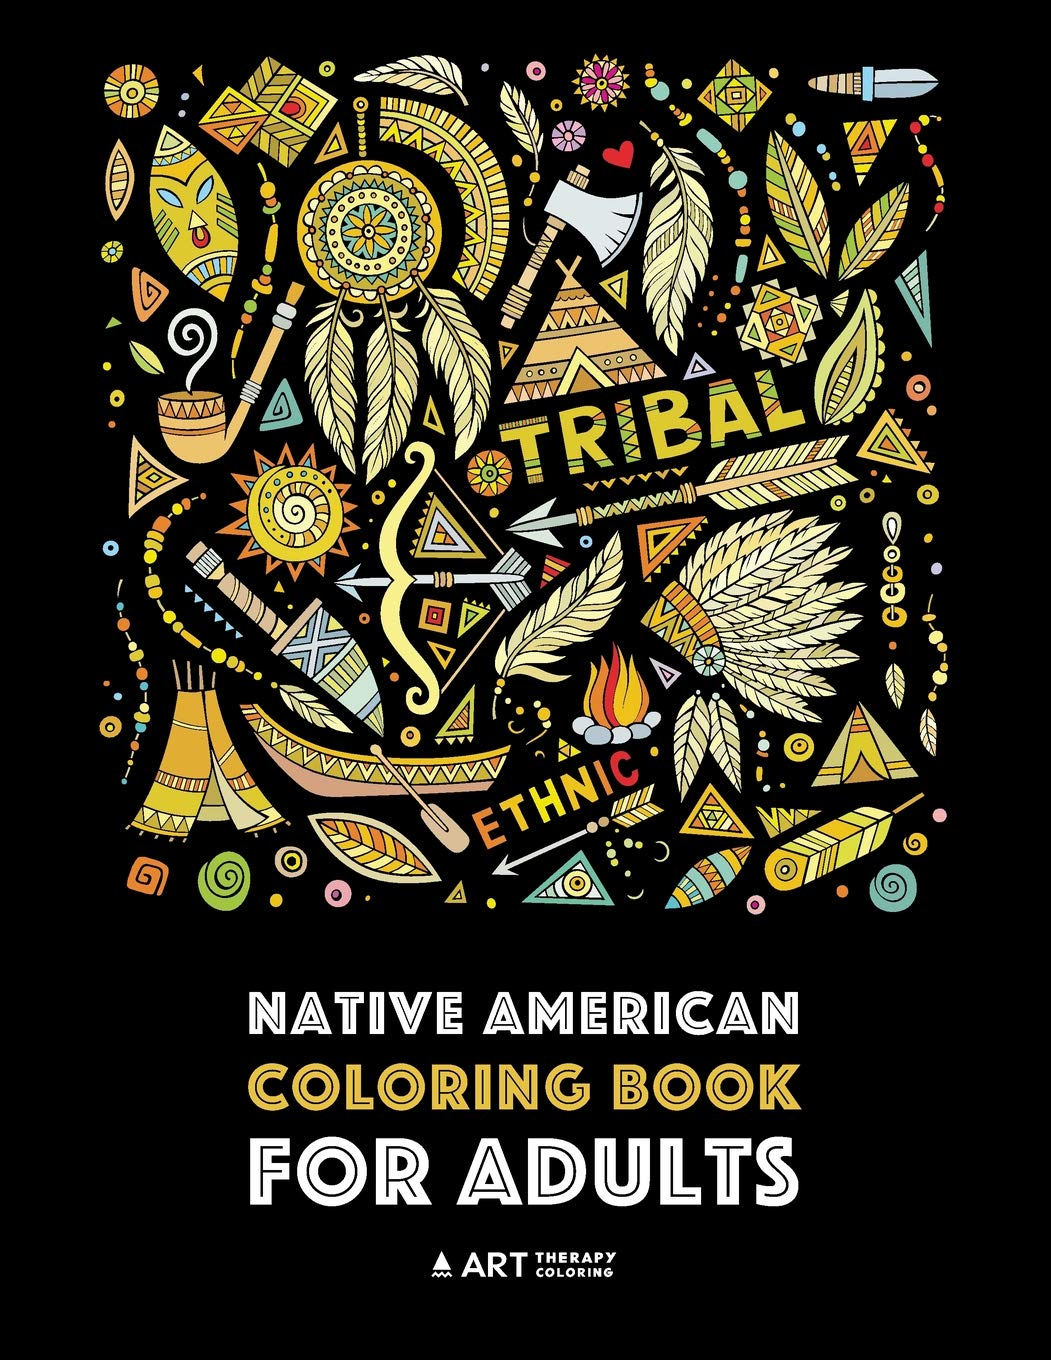 - Native American Coloring Book For Adults: Artwork & Designs